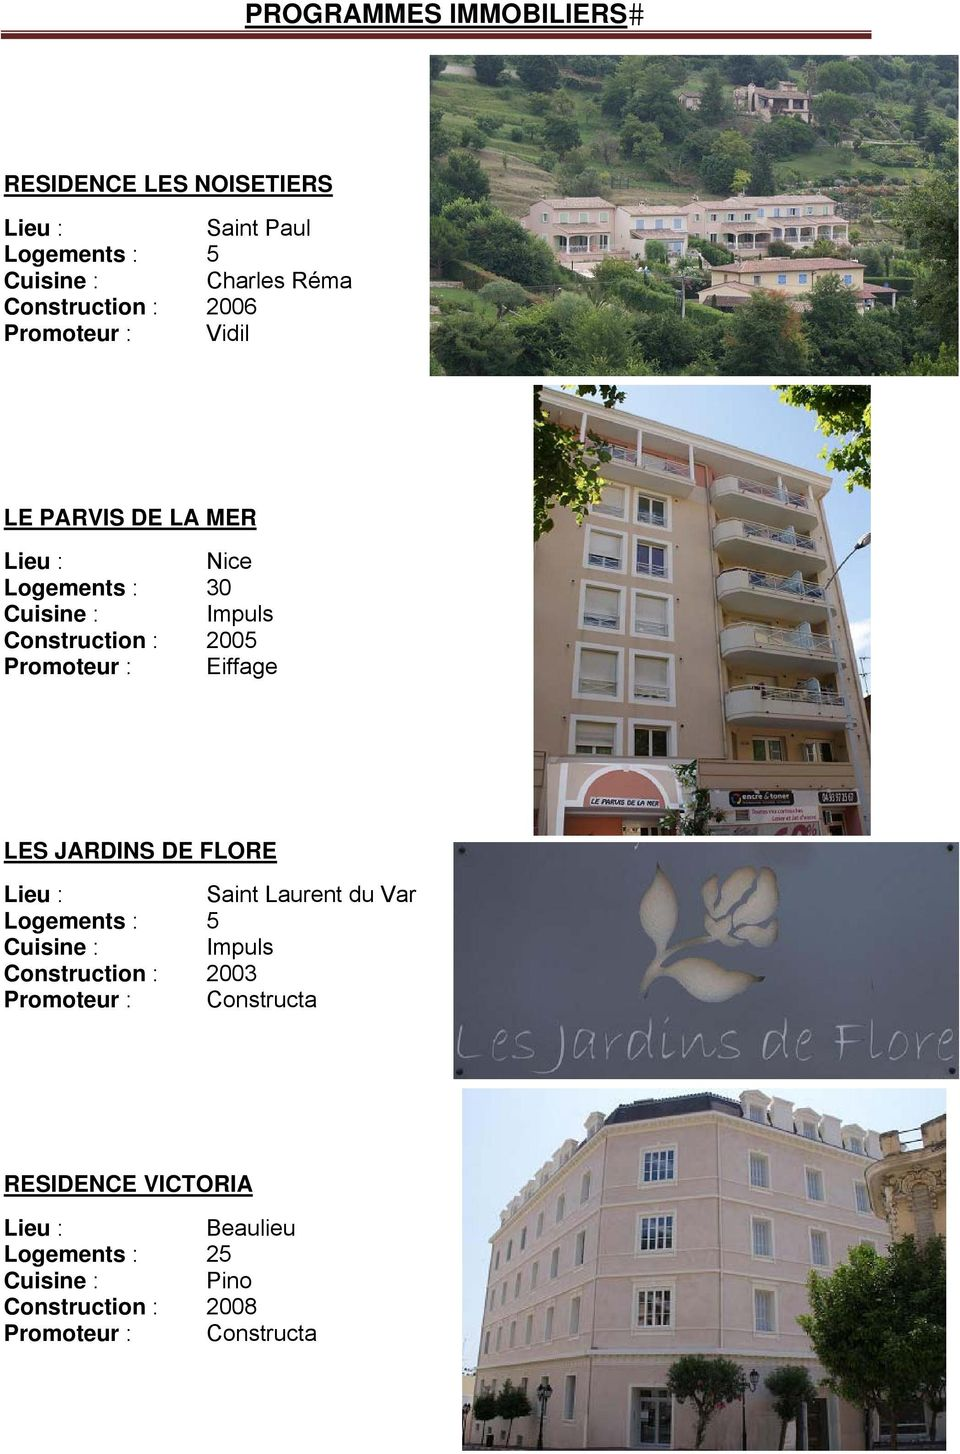 LES JARDINS DE FLORE Saint Laurent du Var Logements : 5 Construction : 2003